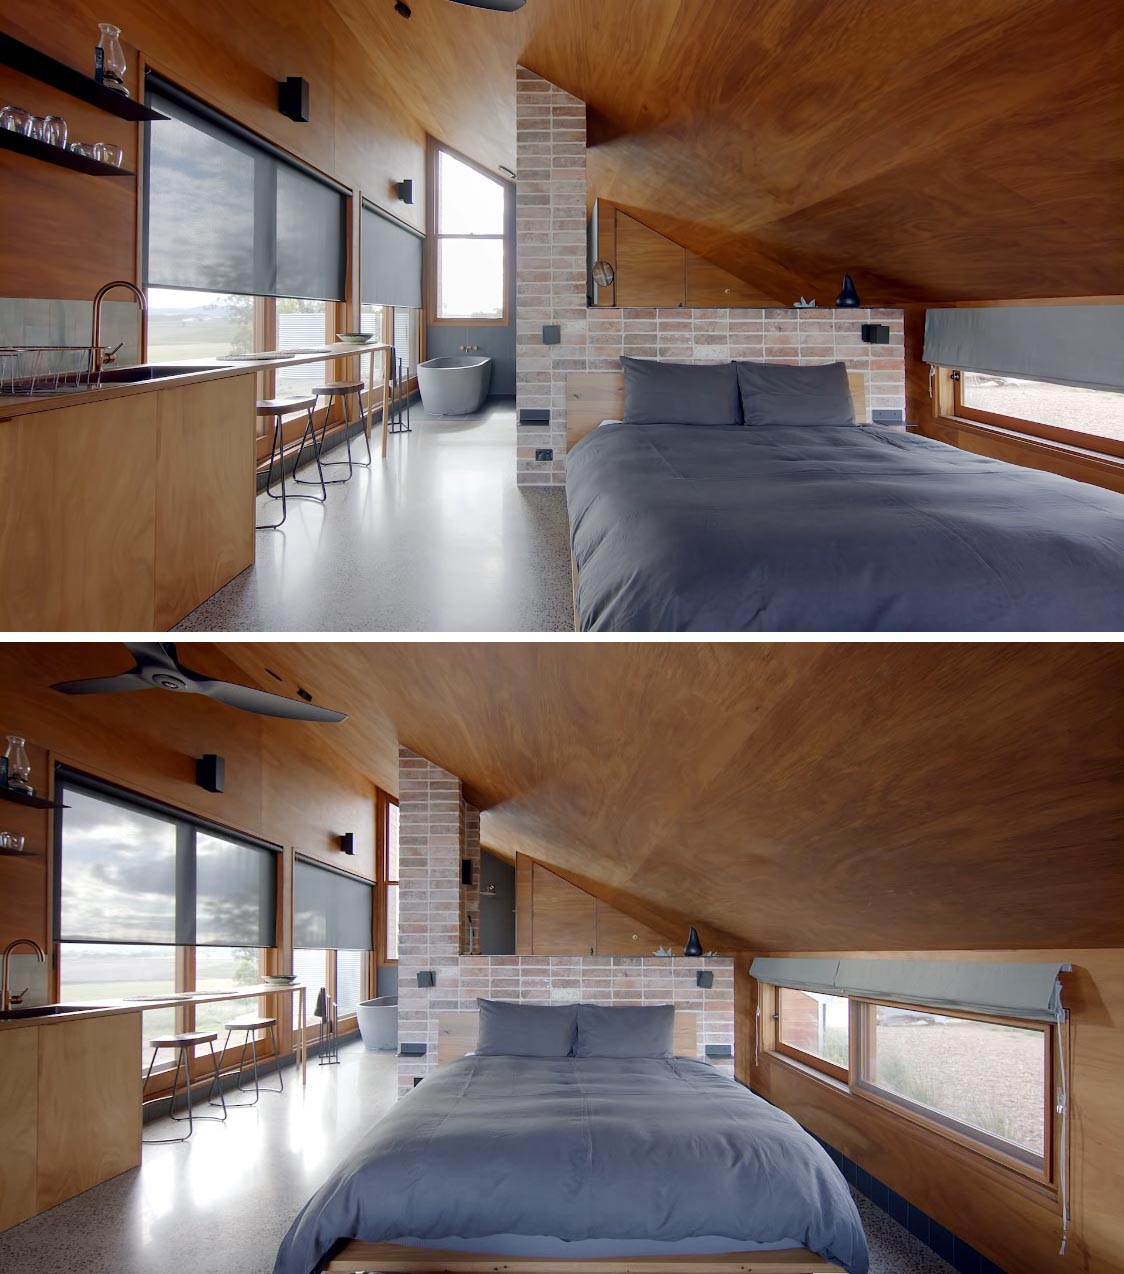 Inside this modern off-grid tiny house, there's polished concrete floors and a blackbutt plywood lined interior. The bedroom area features a king sized bed with reclaimed bricks used as a separation between the sleeping space and the bathroom vanity.